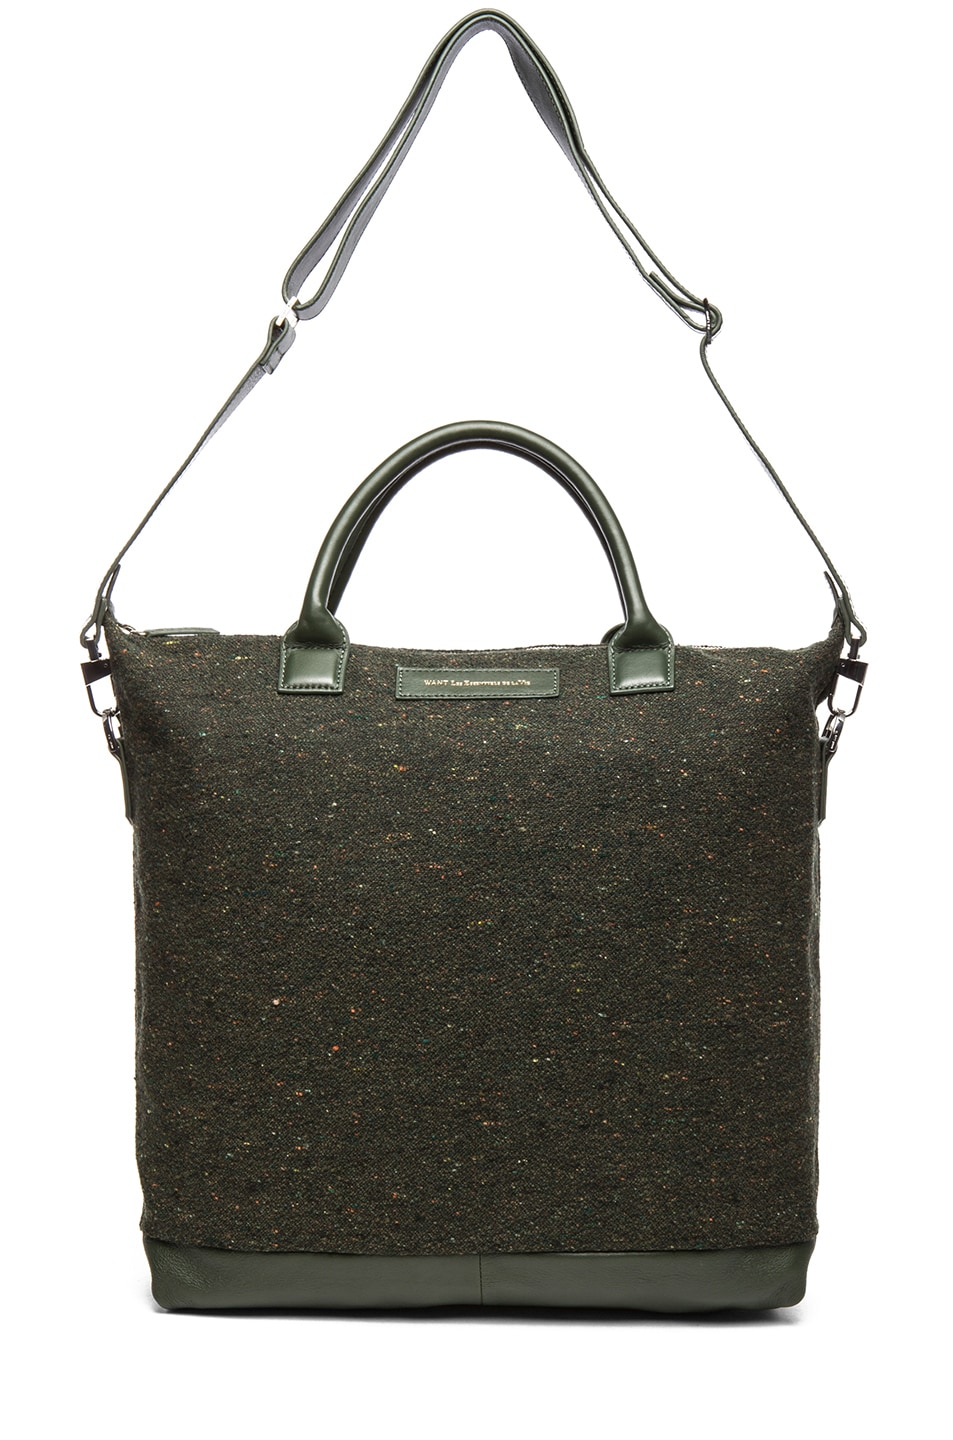 Image 5 of Want Les Essentiels De La Vie O'Hare Shopper Tote in Spruce Fire & Moss